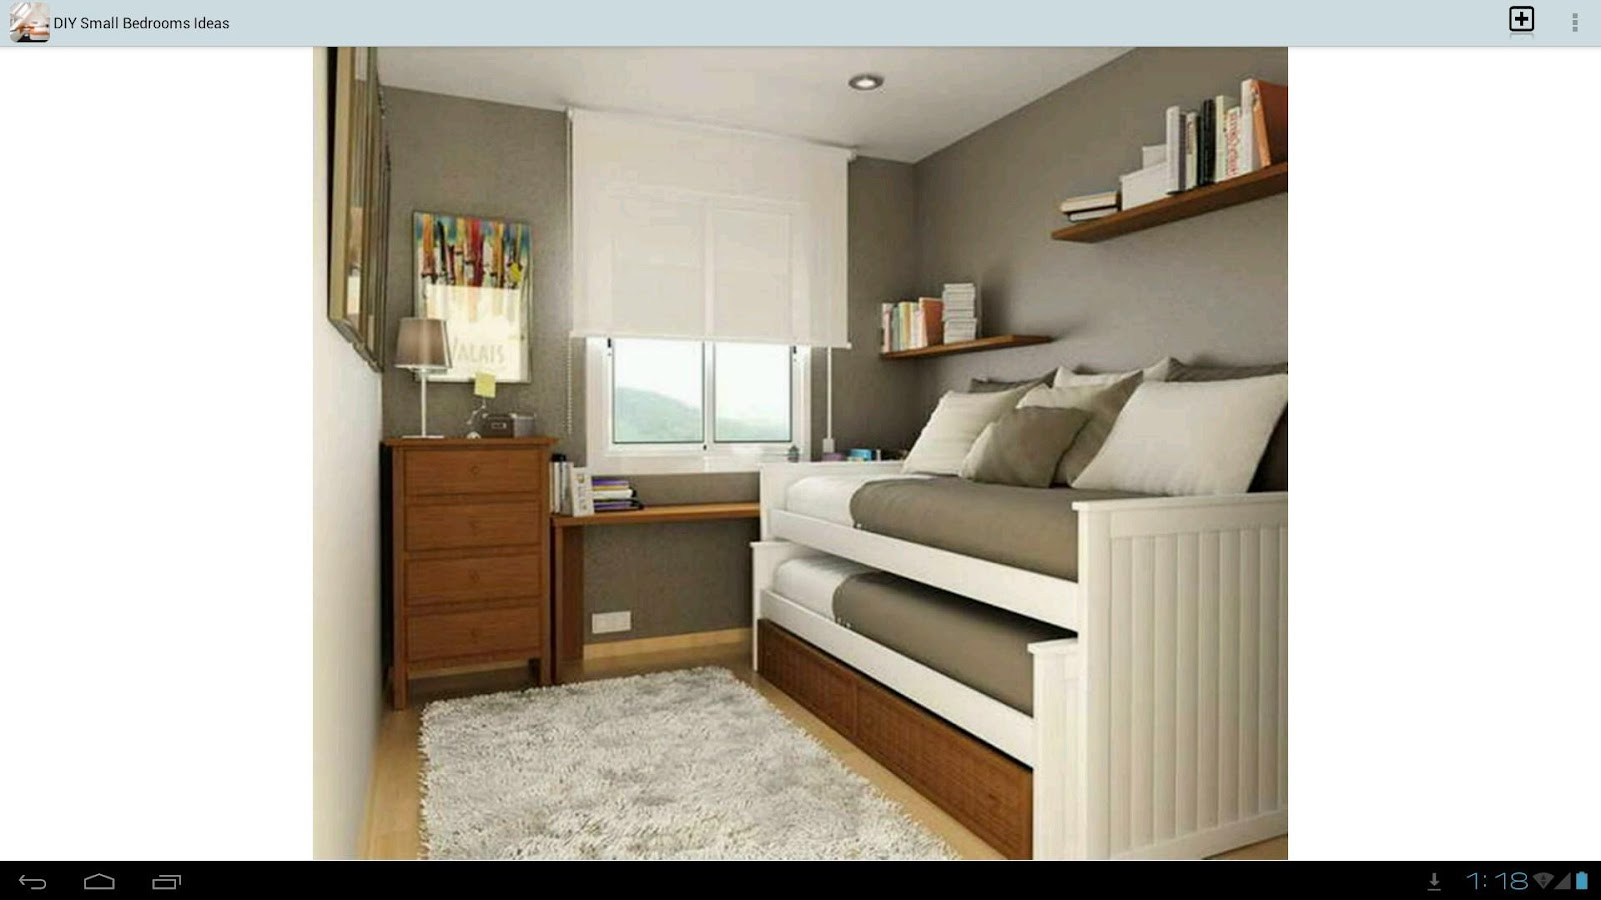 DIY Small Bedrooms Ideas Android Apps on Google Play